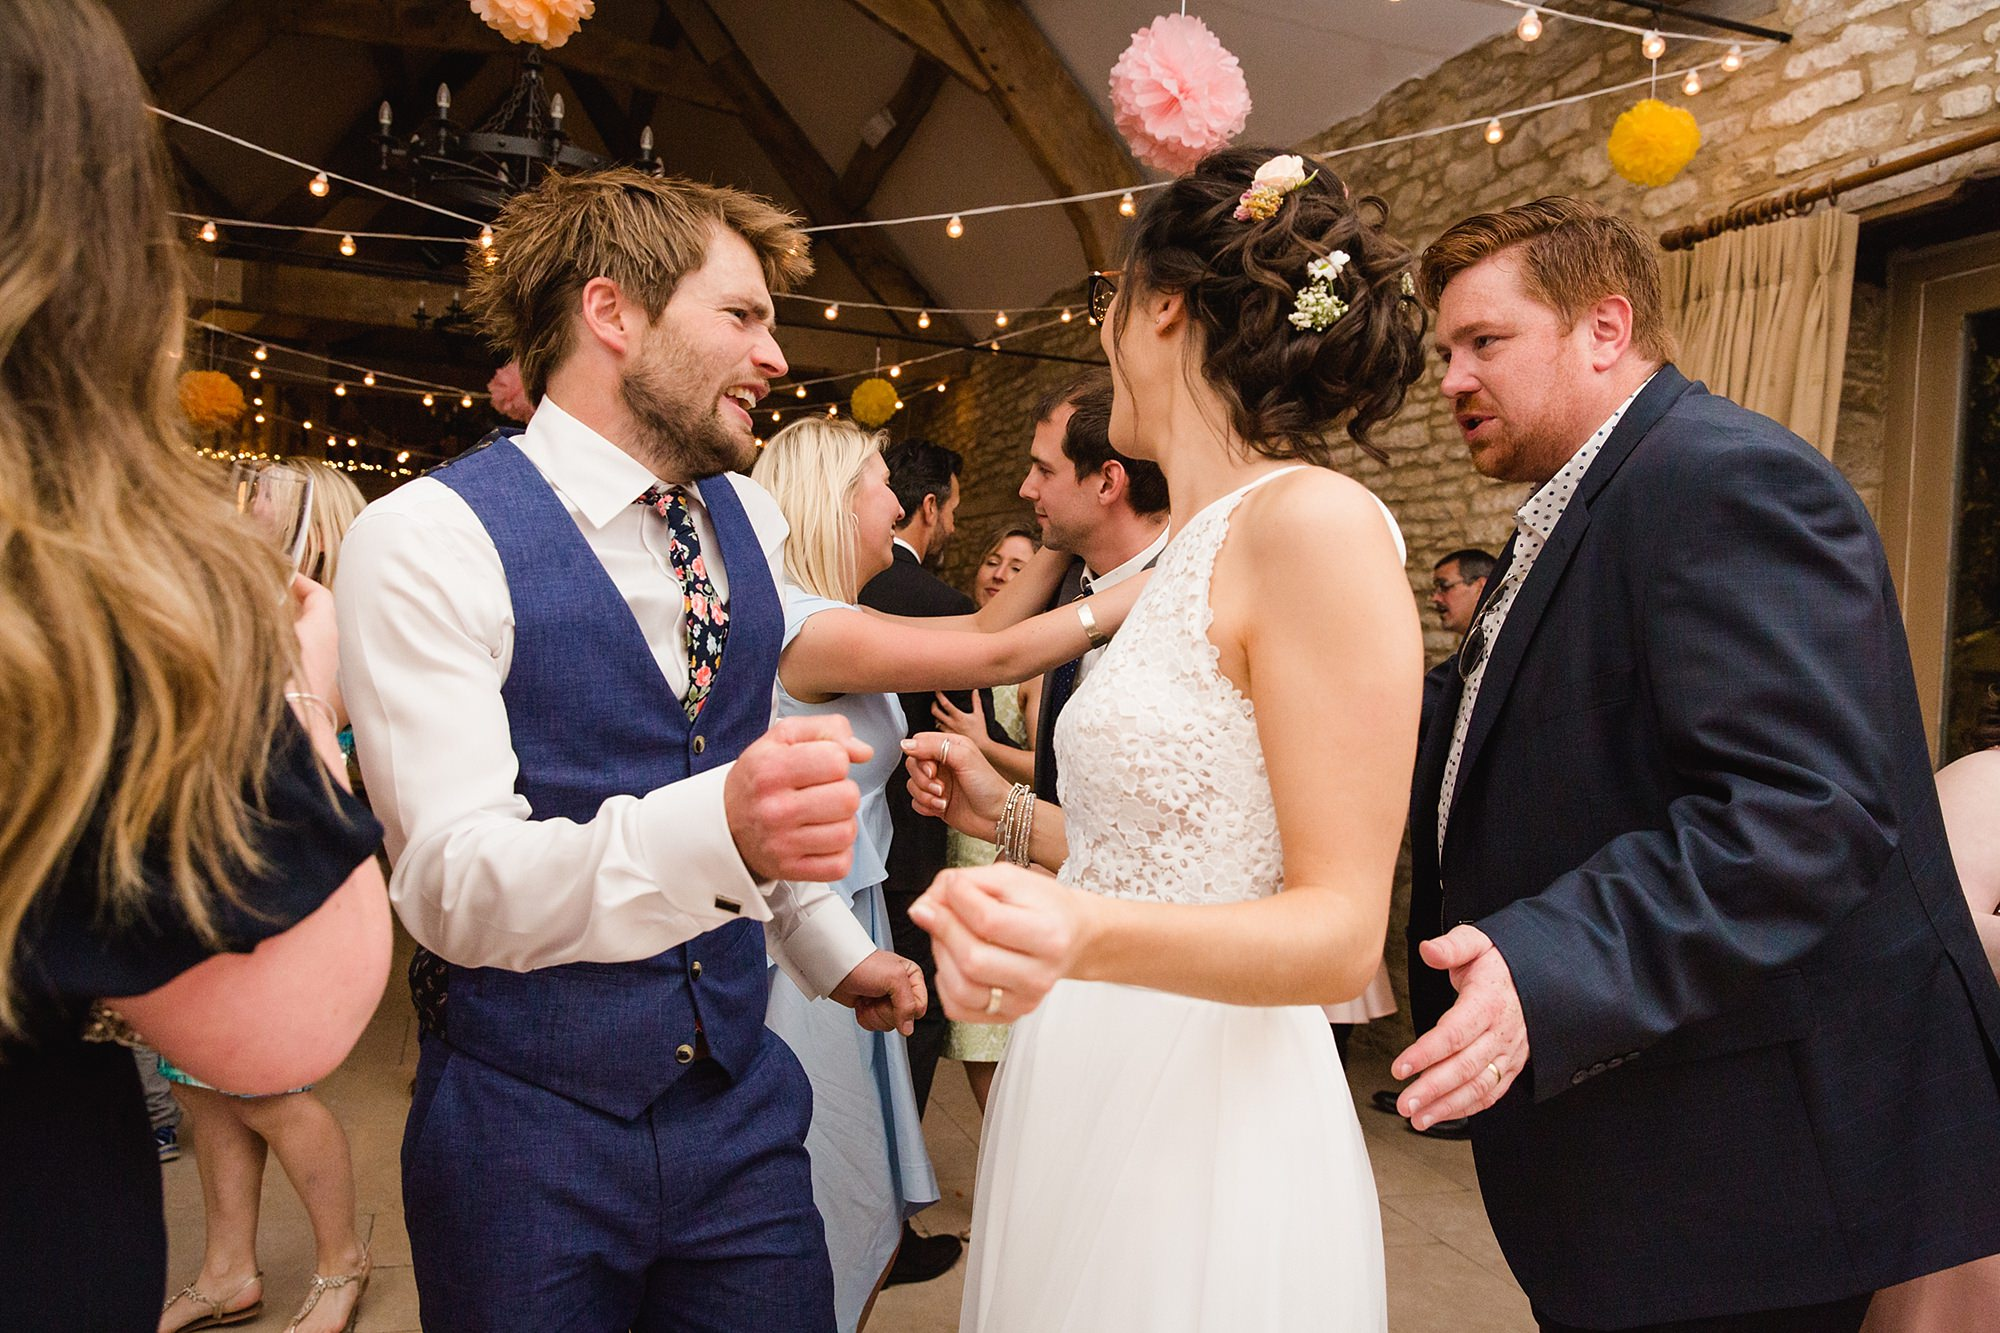 Caswell House Wedding bride and groom dance together with guests